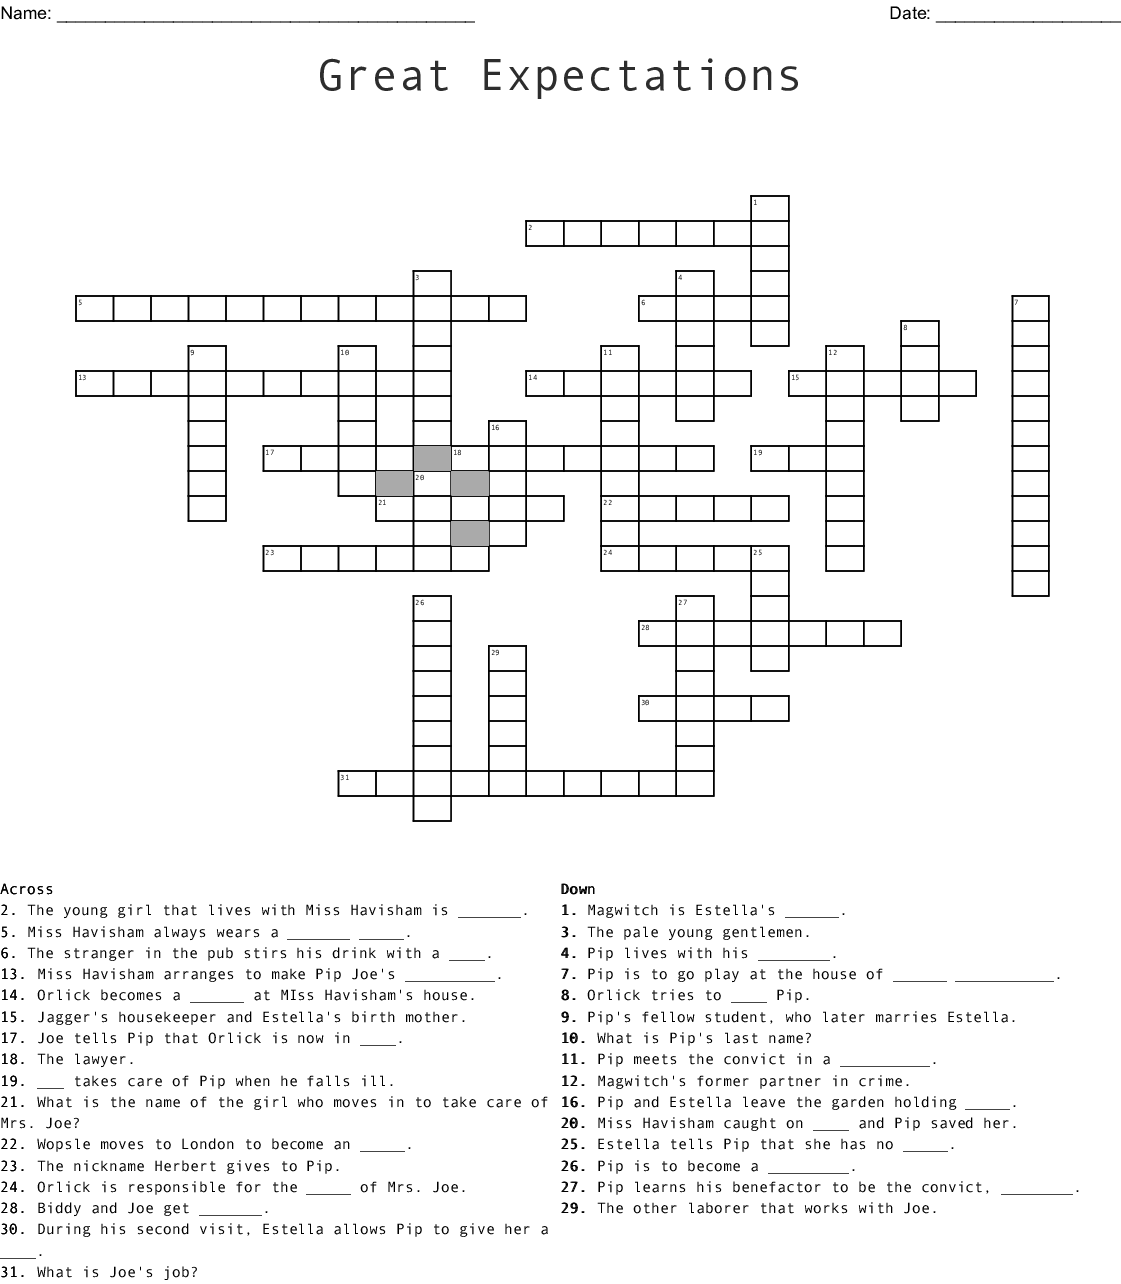 Great Expectations Word Search